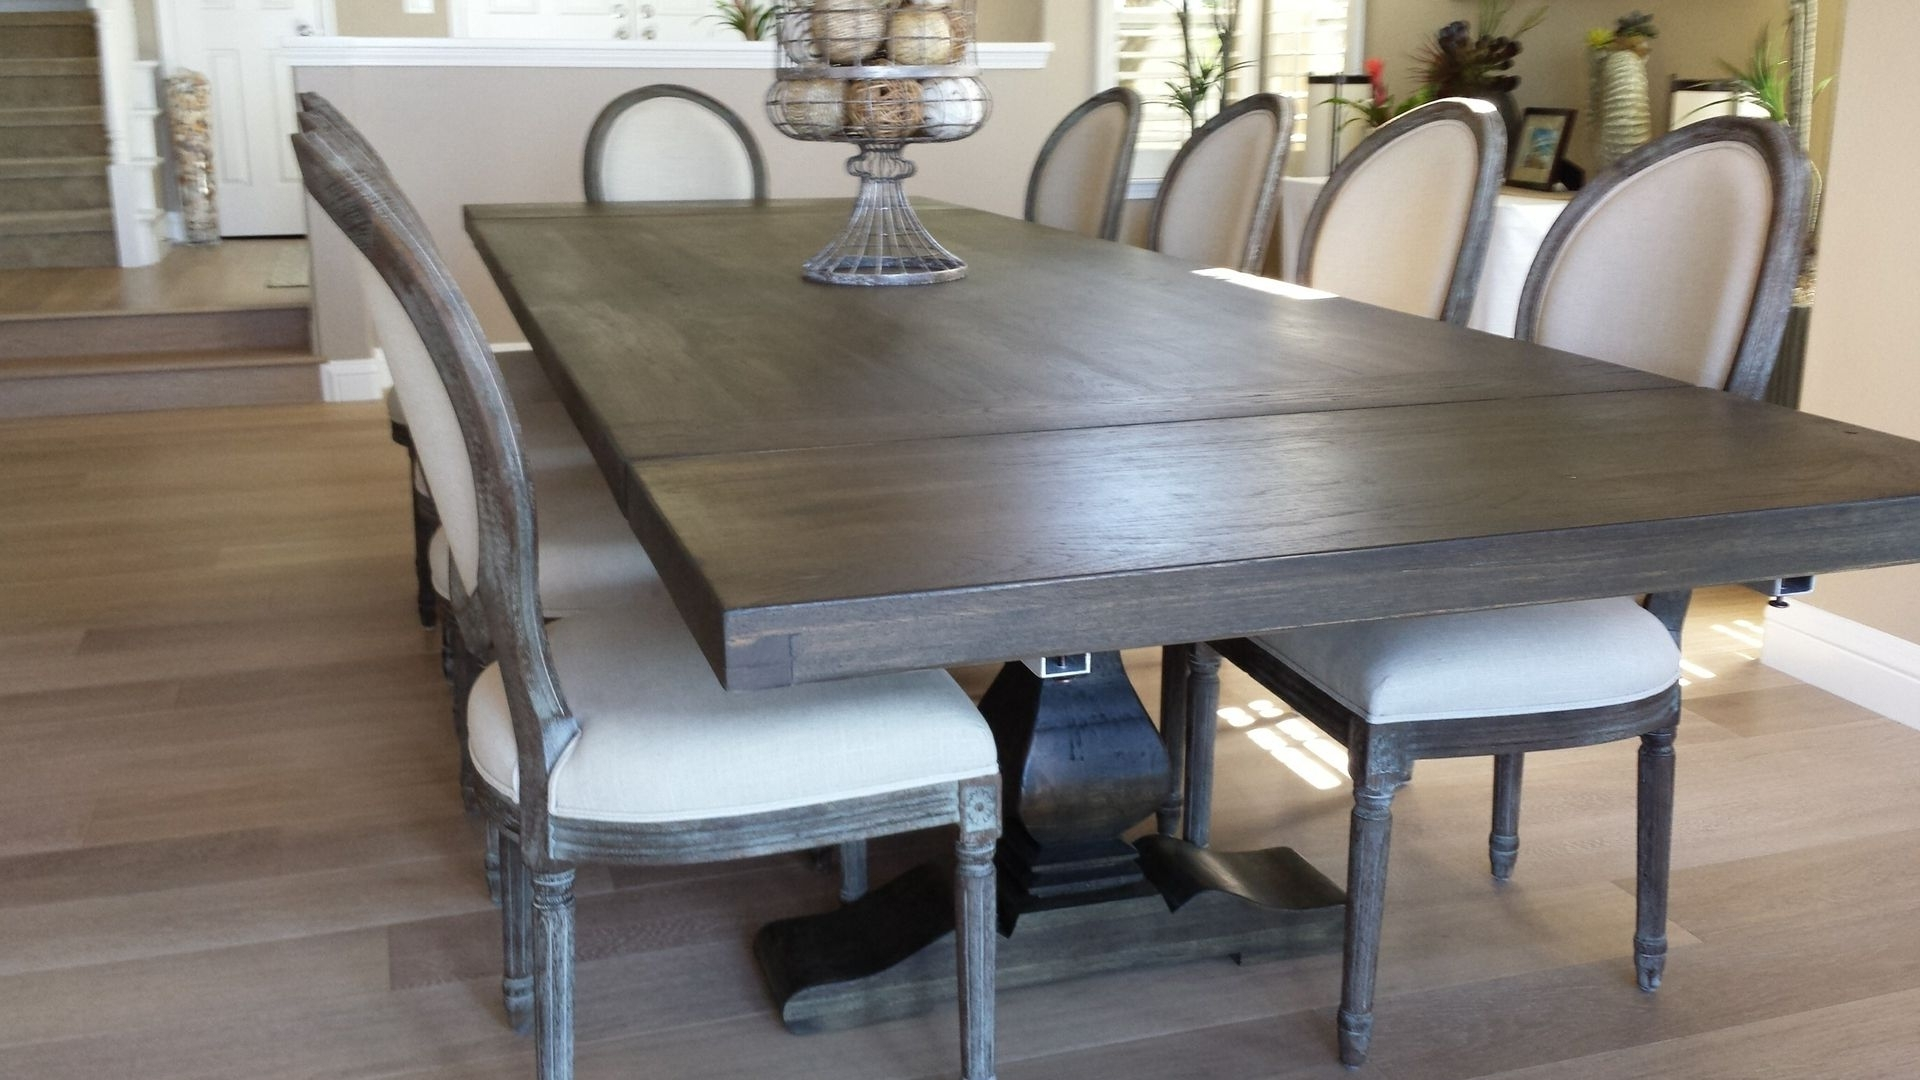 Popular Glamorous Extendable Dining Room Table For 12 Chairs Licious Round Intended For Extendable Dining Room Tables And Chairs (Gallery 11 of 25)